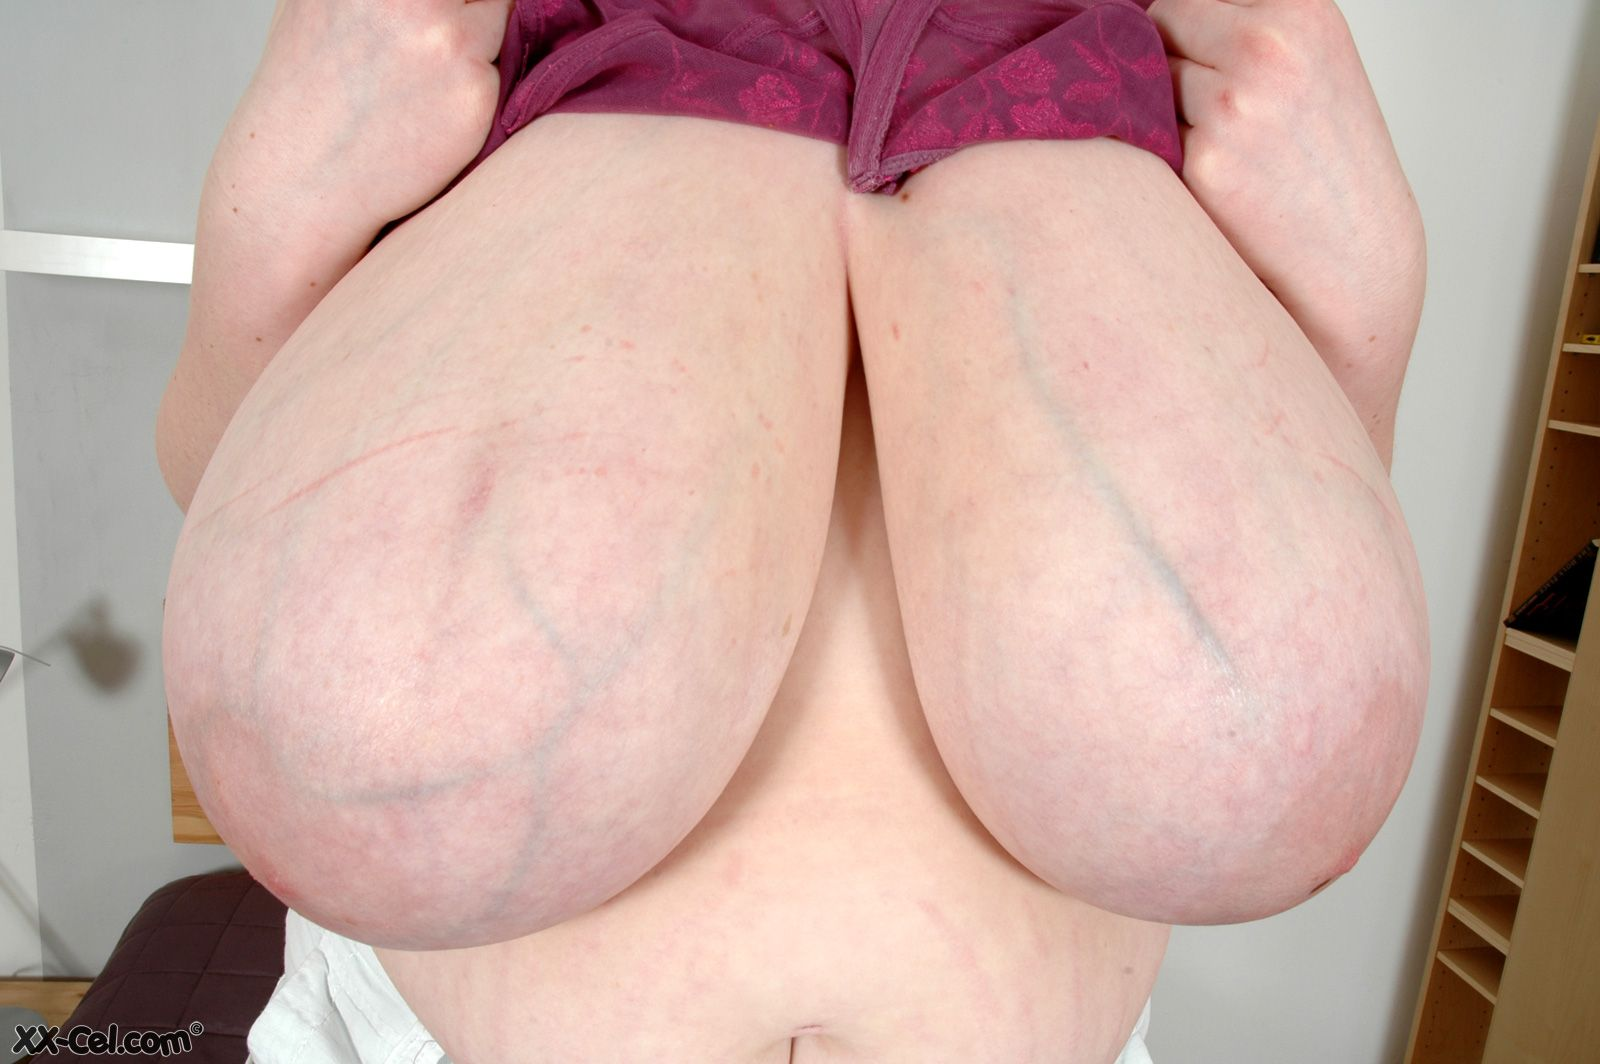 Massive Voluptuous Boobs - Venus Nudes & Veinous Boobs | My Boob Site